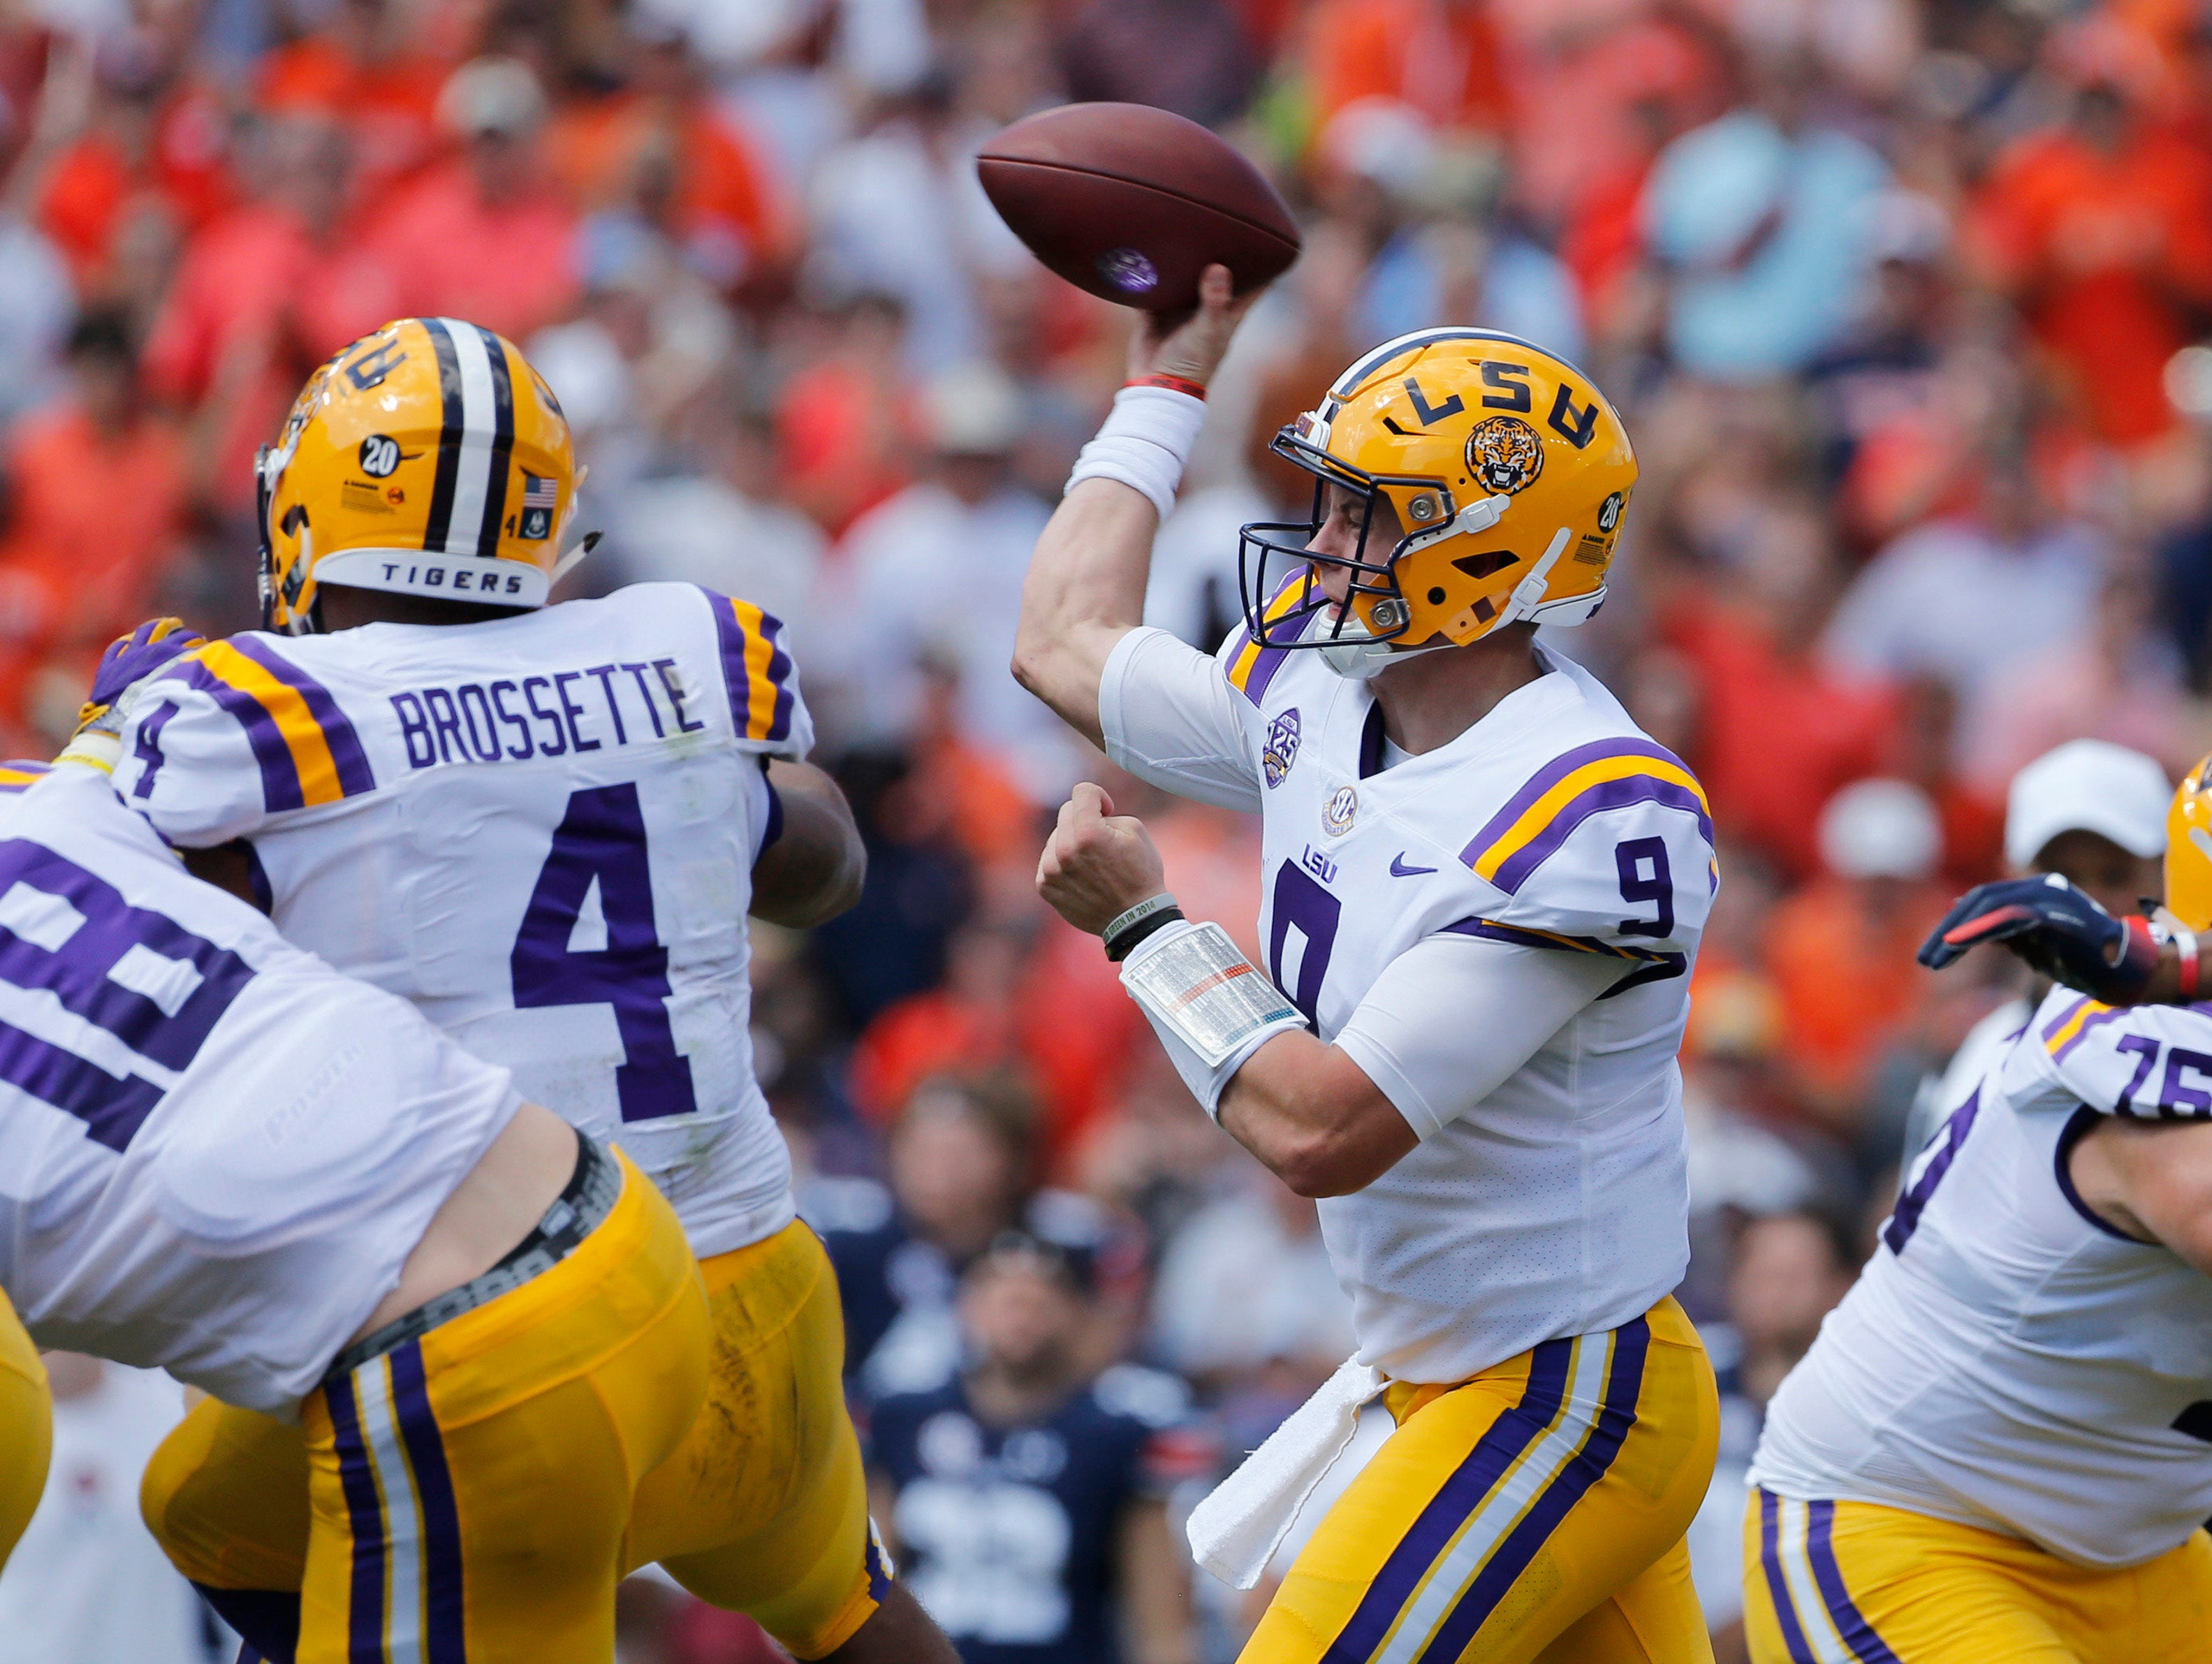 Sep 15, 2018; Auburn, AL, USA; LSU Tigers quarterback Joe Burrow (9) throws a pass against the Auburn Tigers during the first quarter at Jordan-Hare Stadium. Mandatory Credit: John Reed-USA TODAY Sports